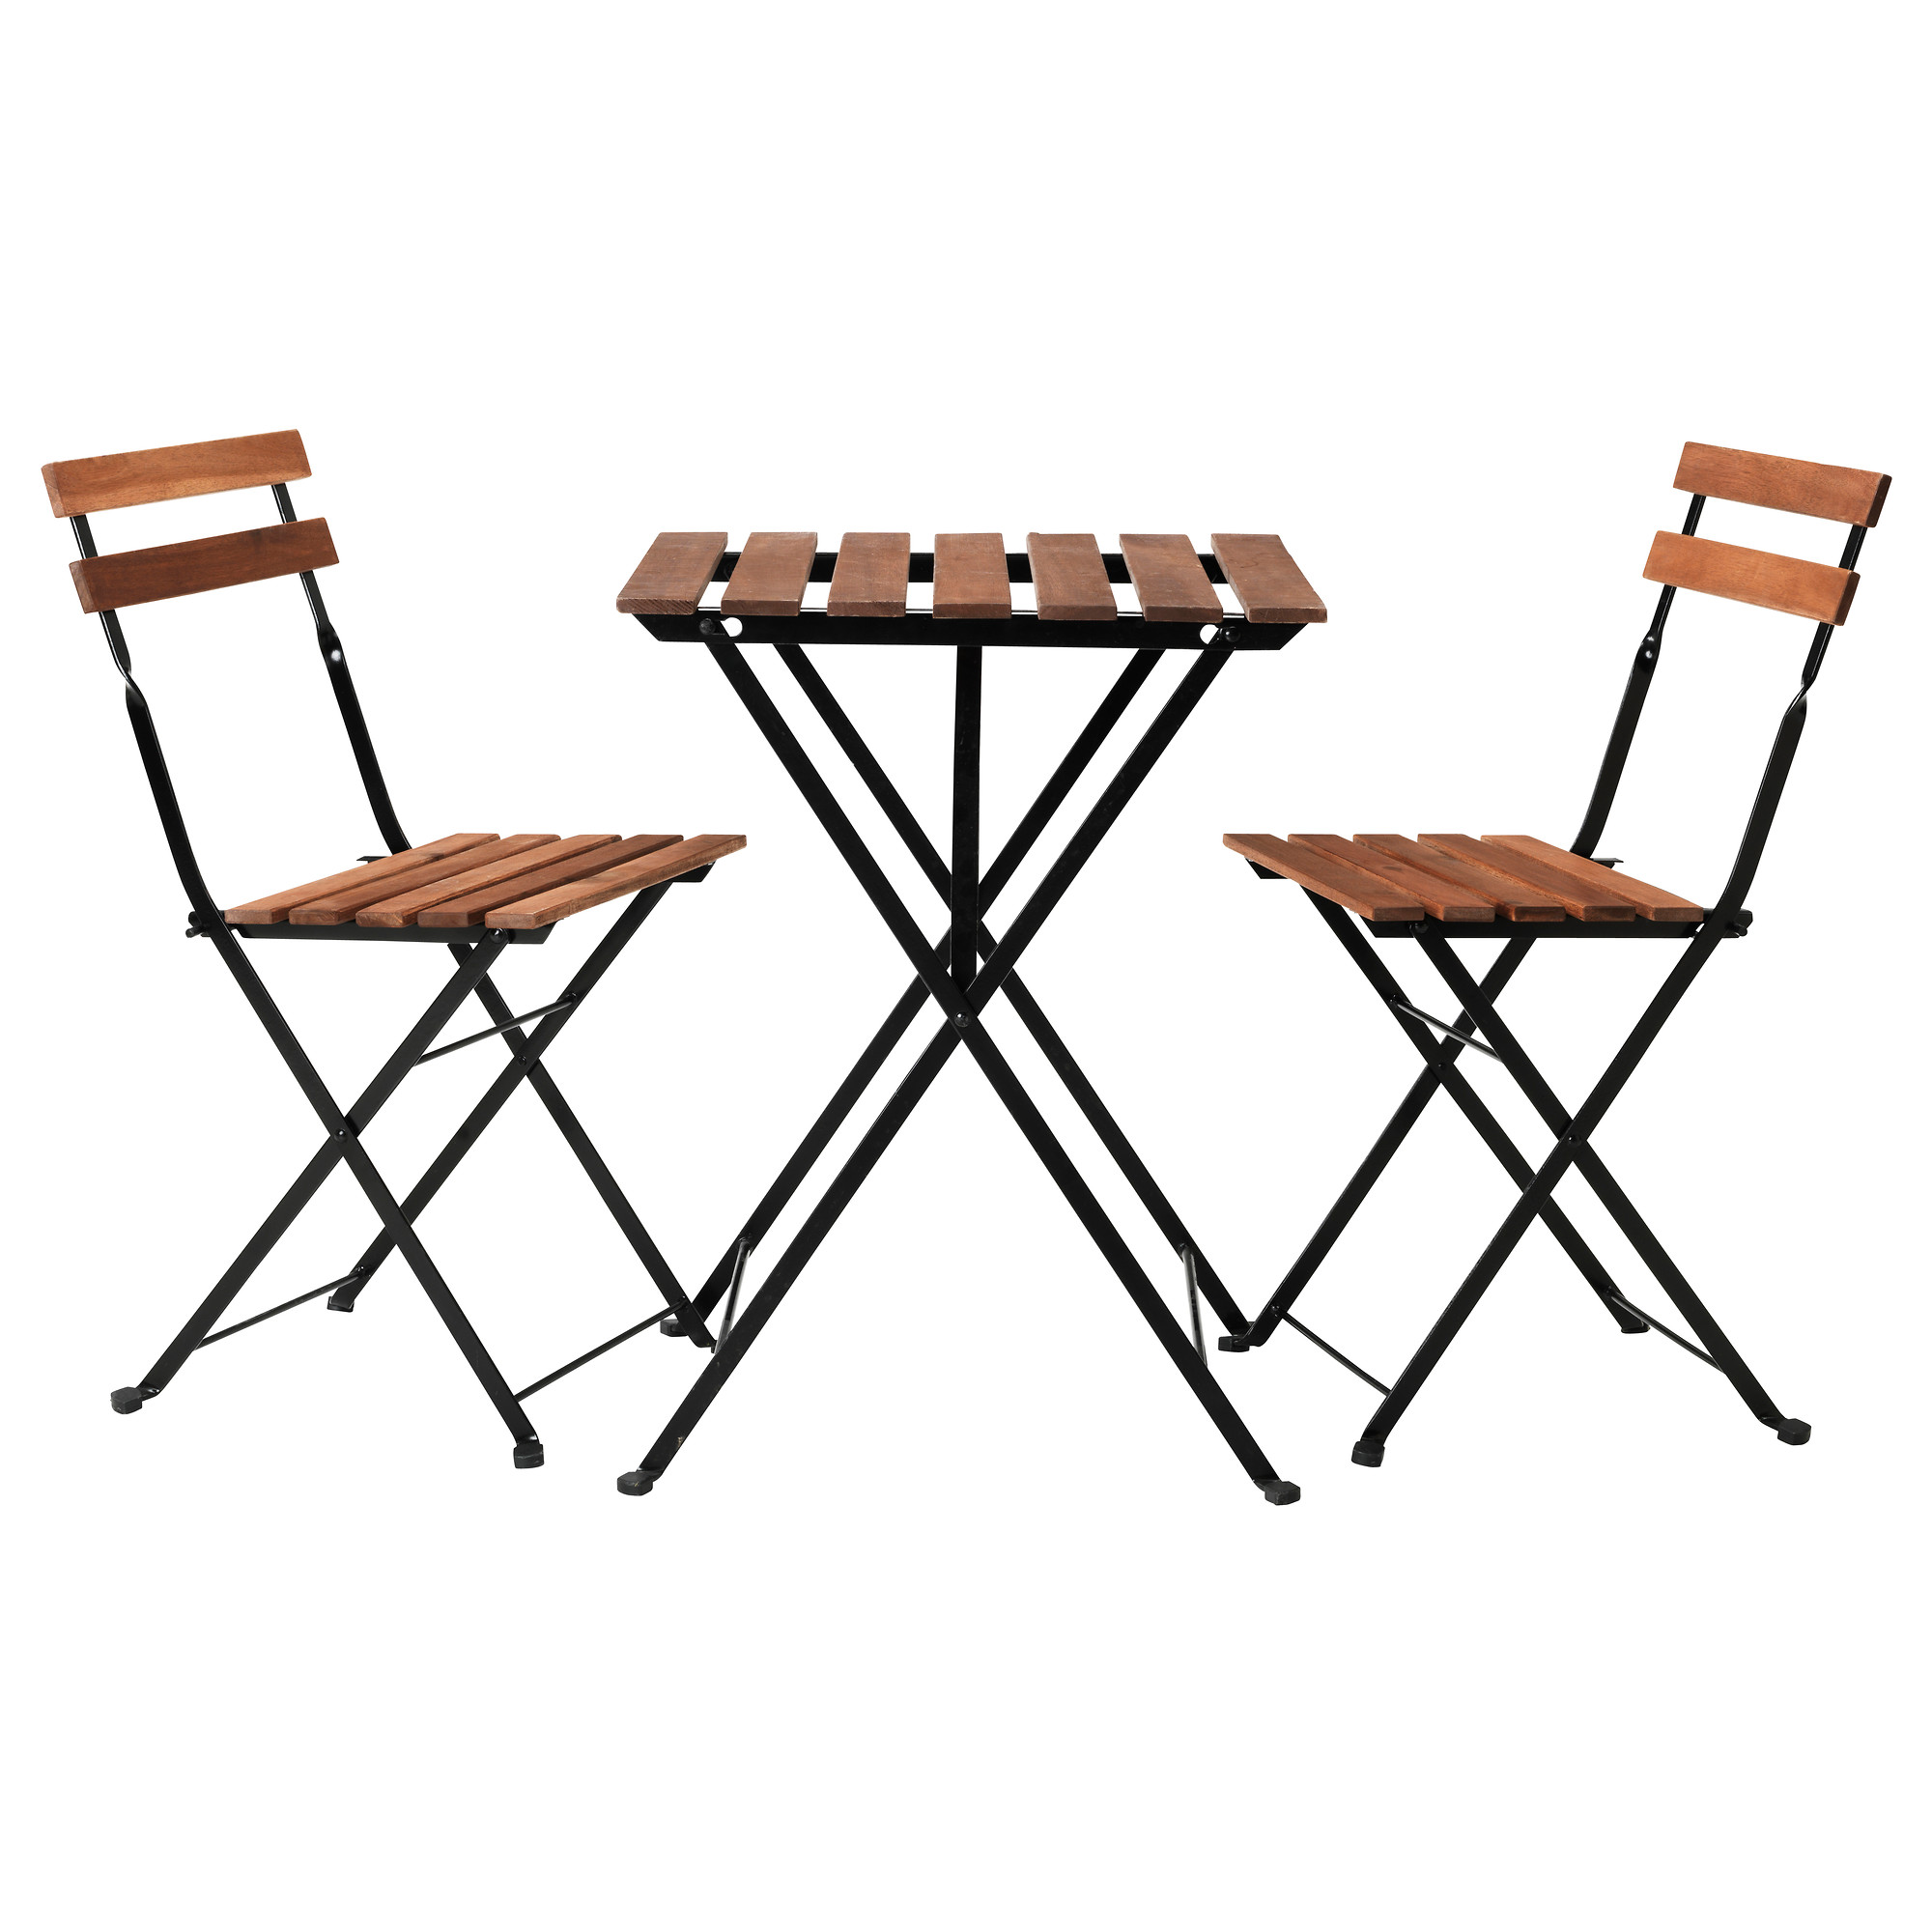 Charming Outside Table And Chairs Part - 8: TÄRNÖ Table+2 Chairs, Outdoor, Black Acacia, ...